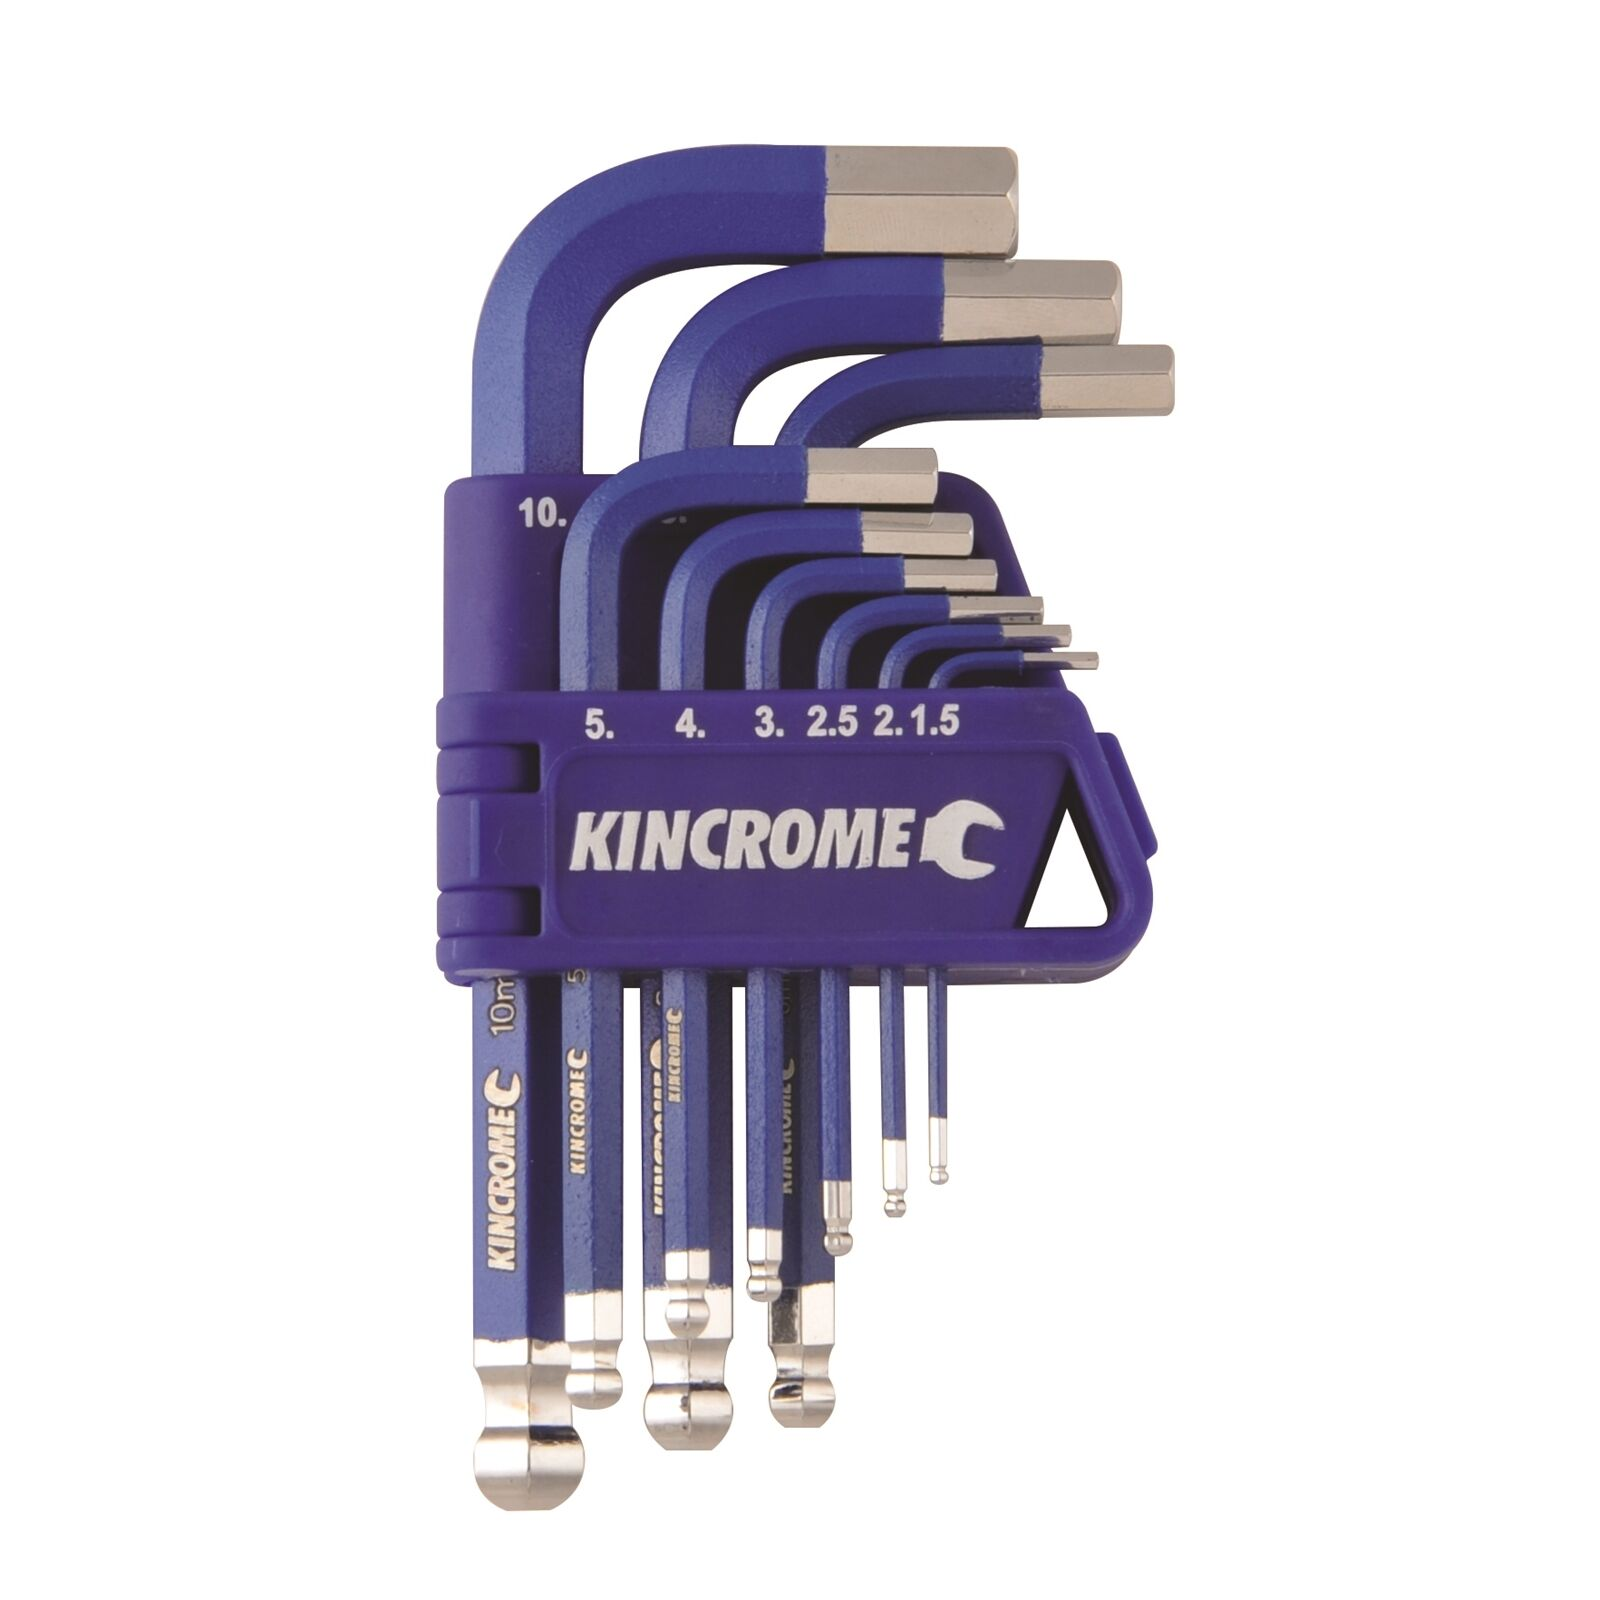 Kincrome HEX KEY & WRENCH SET 9 Pieces Australian Brand - Metric or Imperial